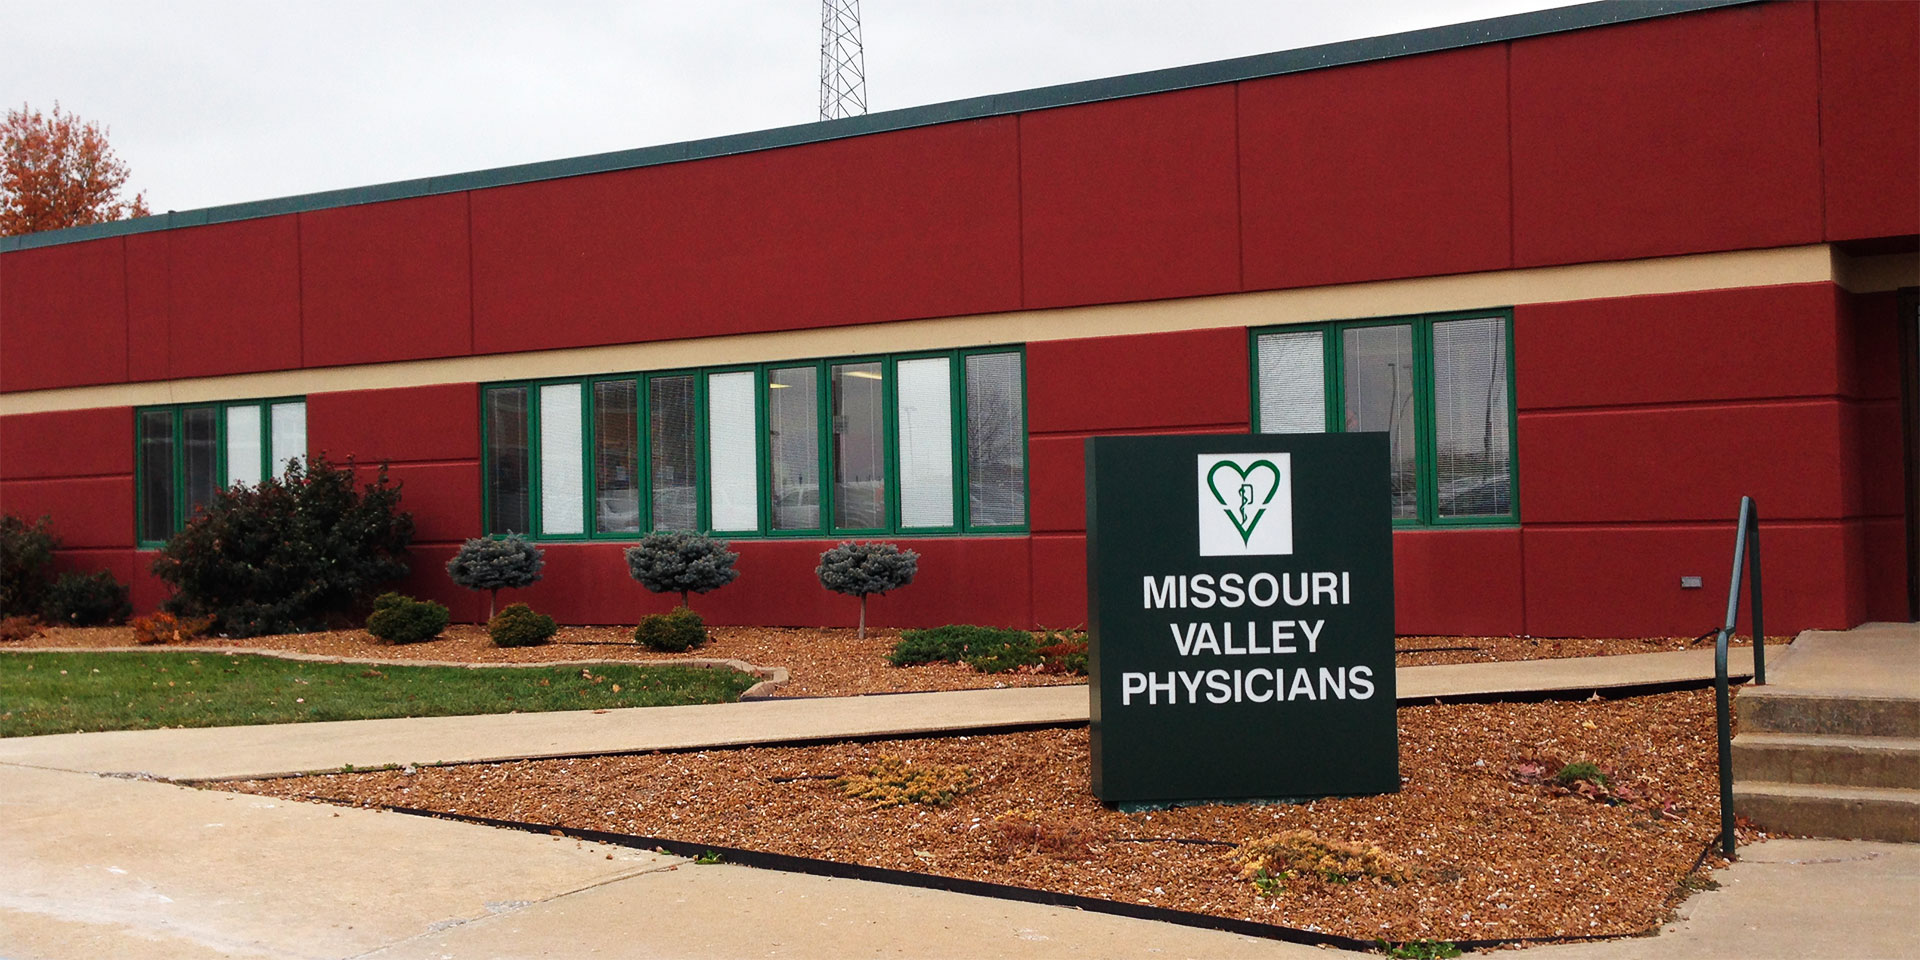 Jcmg Missouri Valley Physicians Marshall, MO